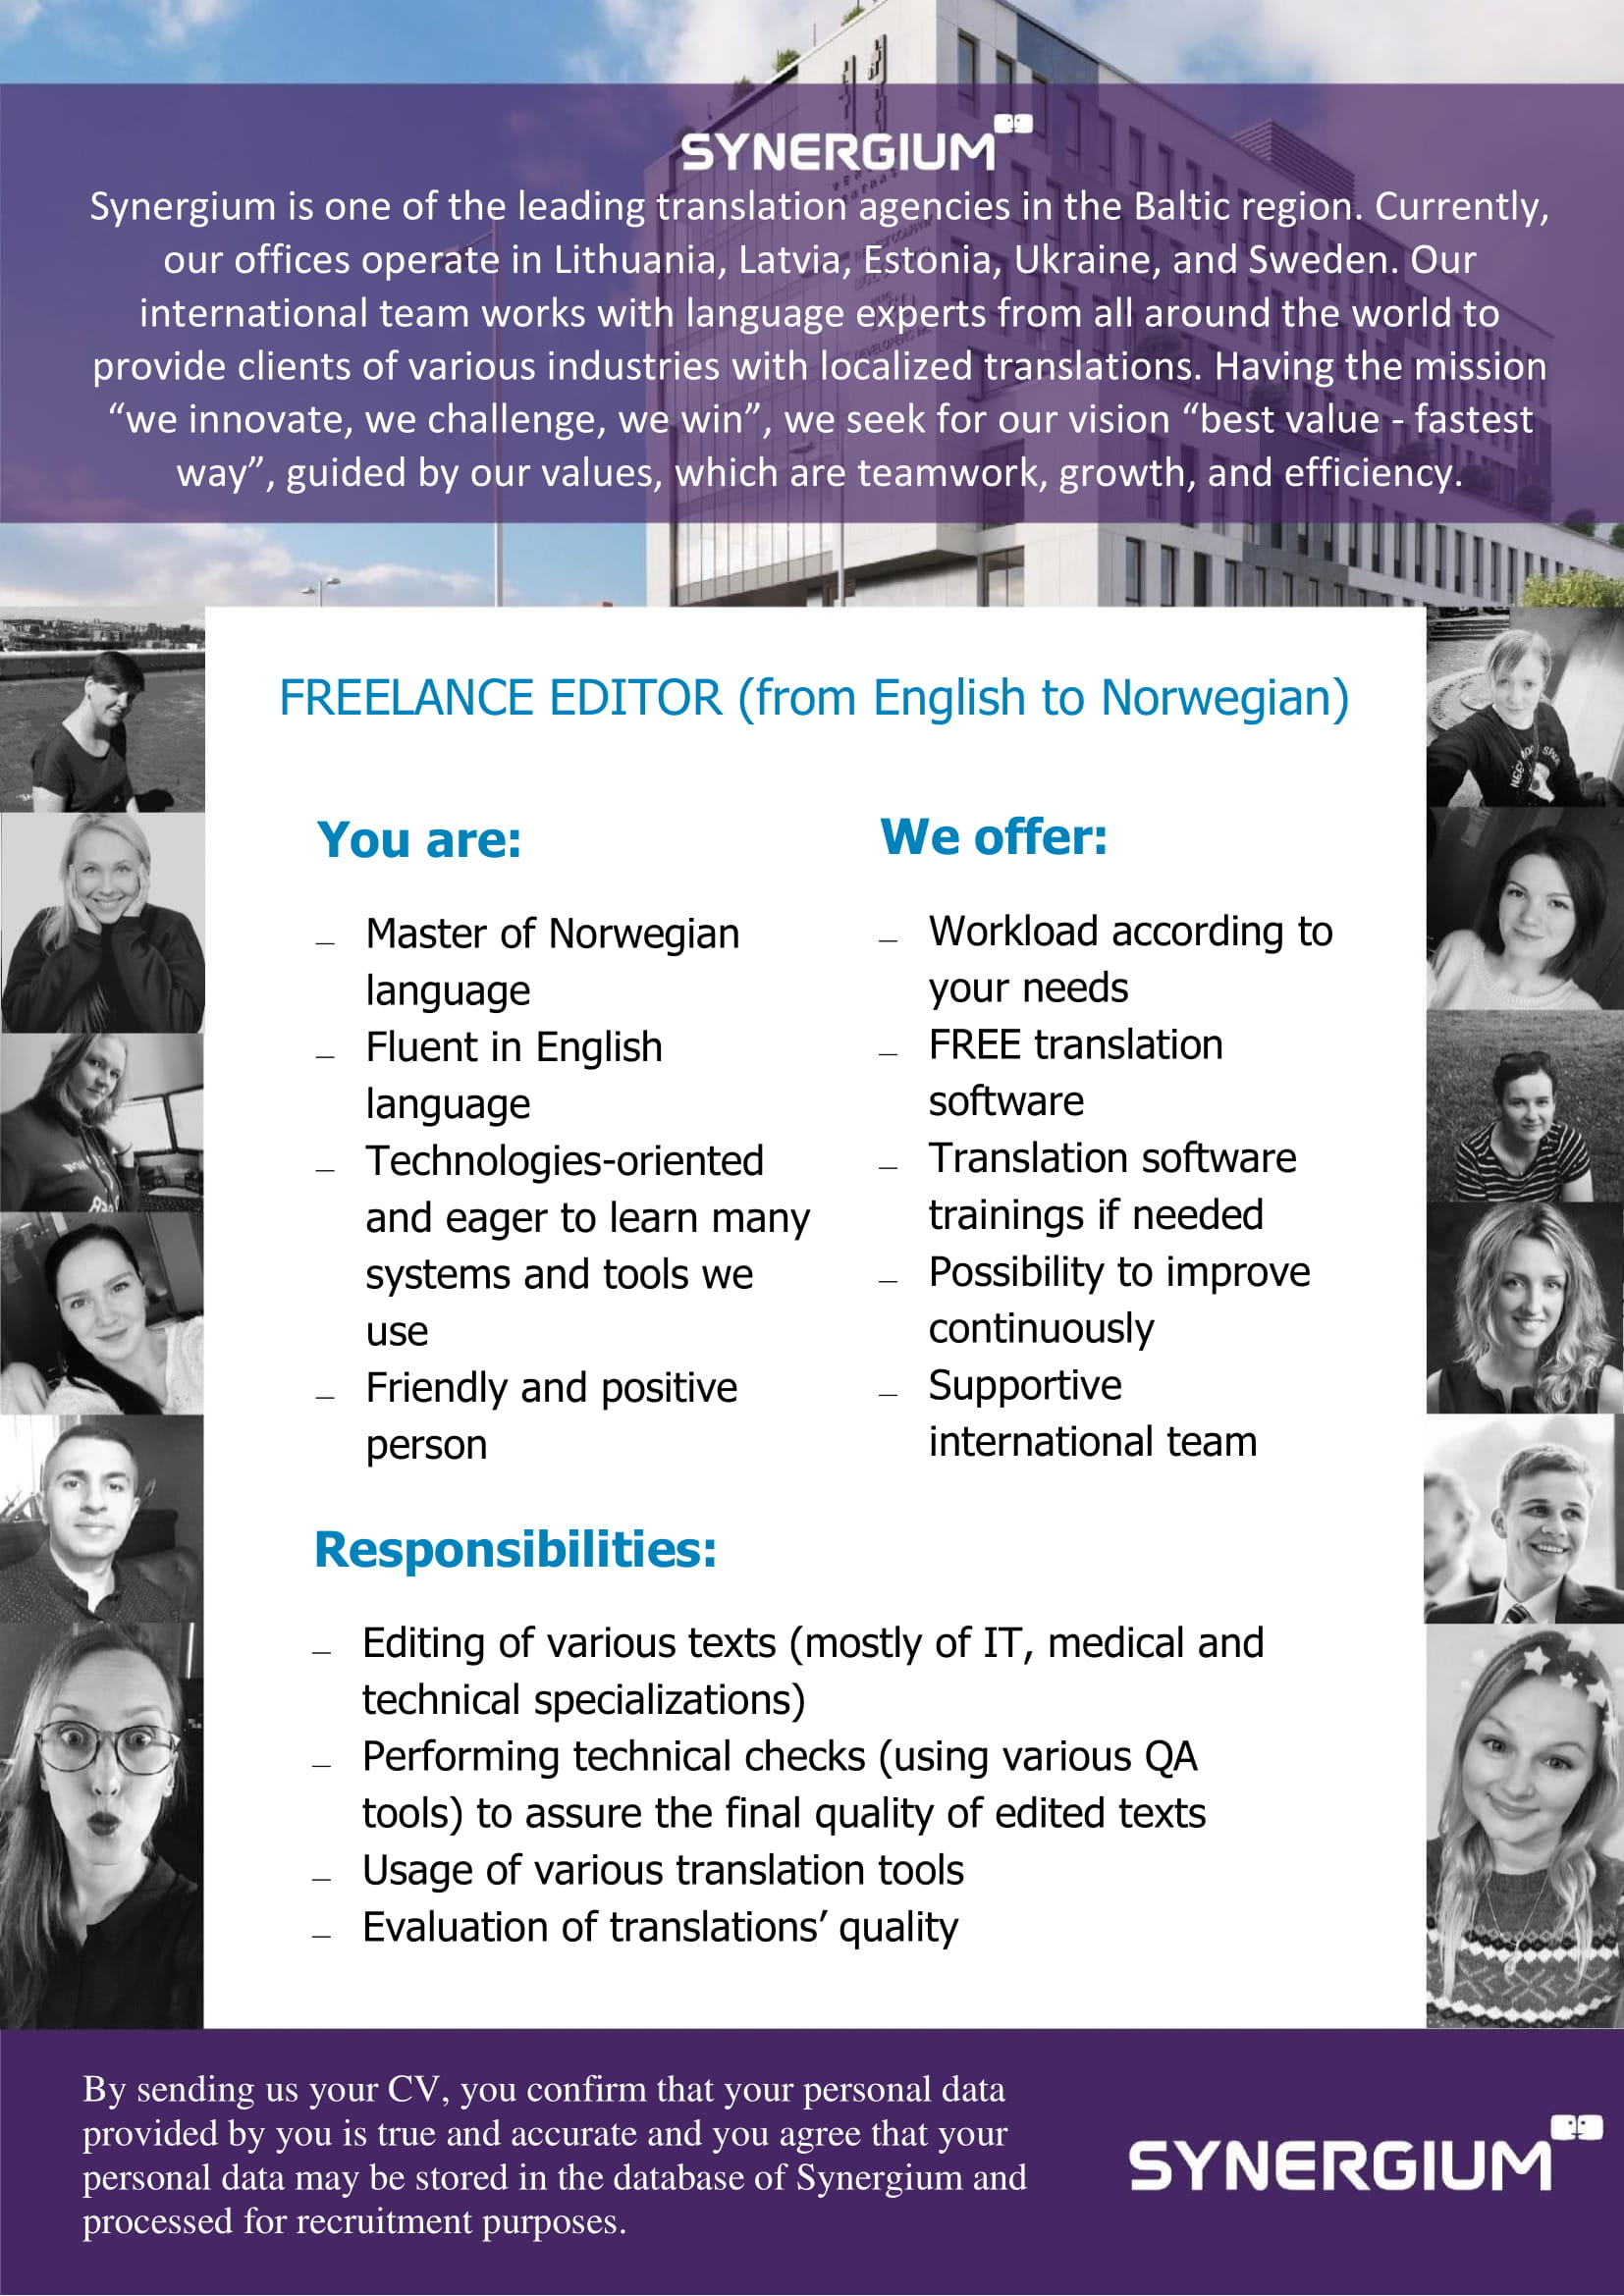 freelance editor from english to norwegian job advertisement synergium